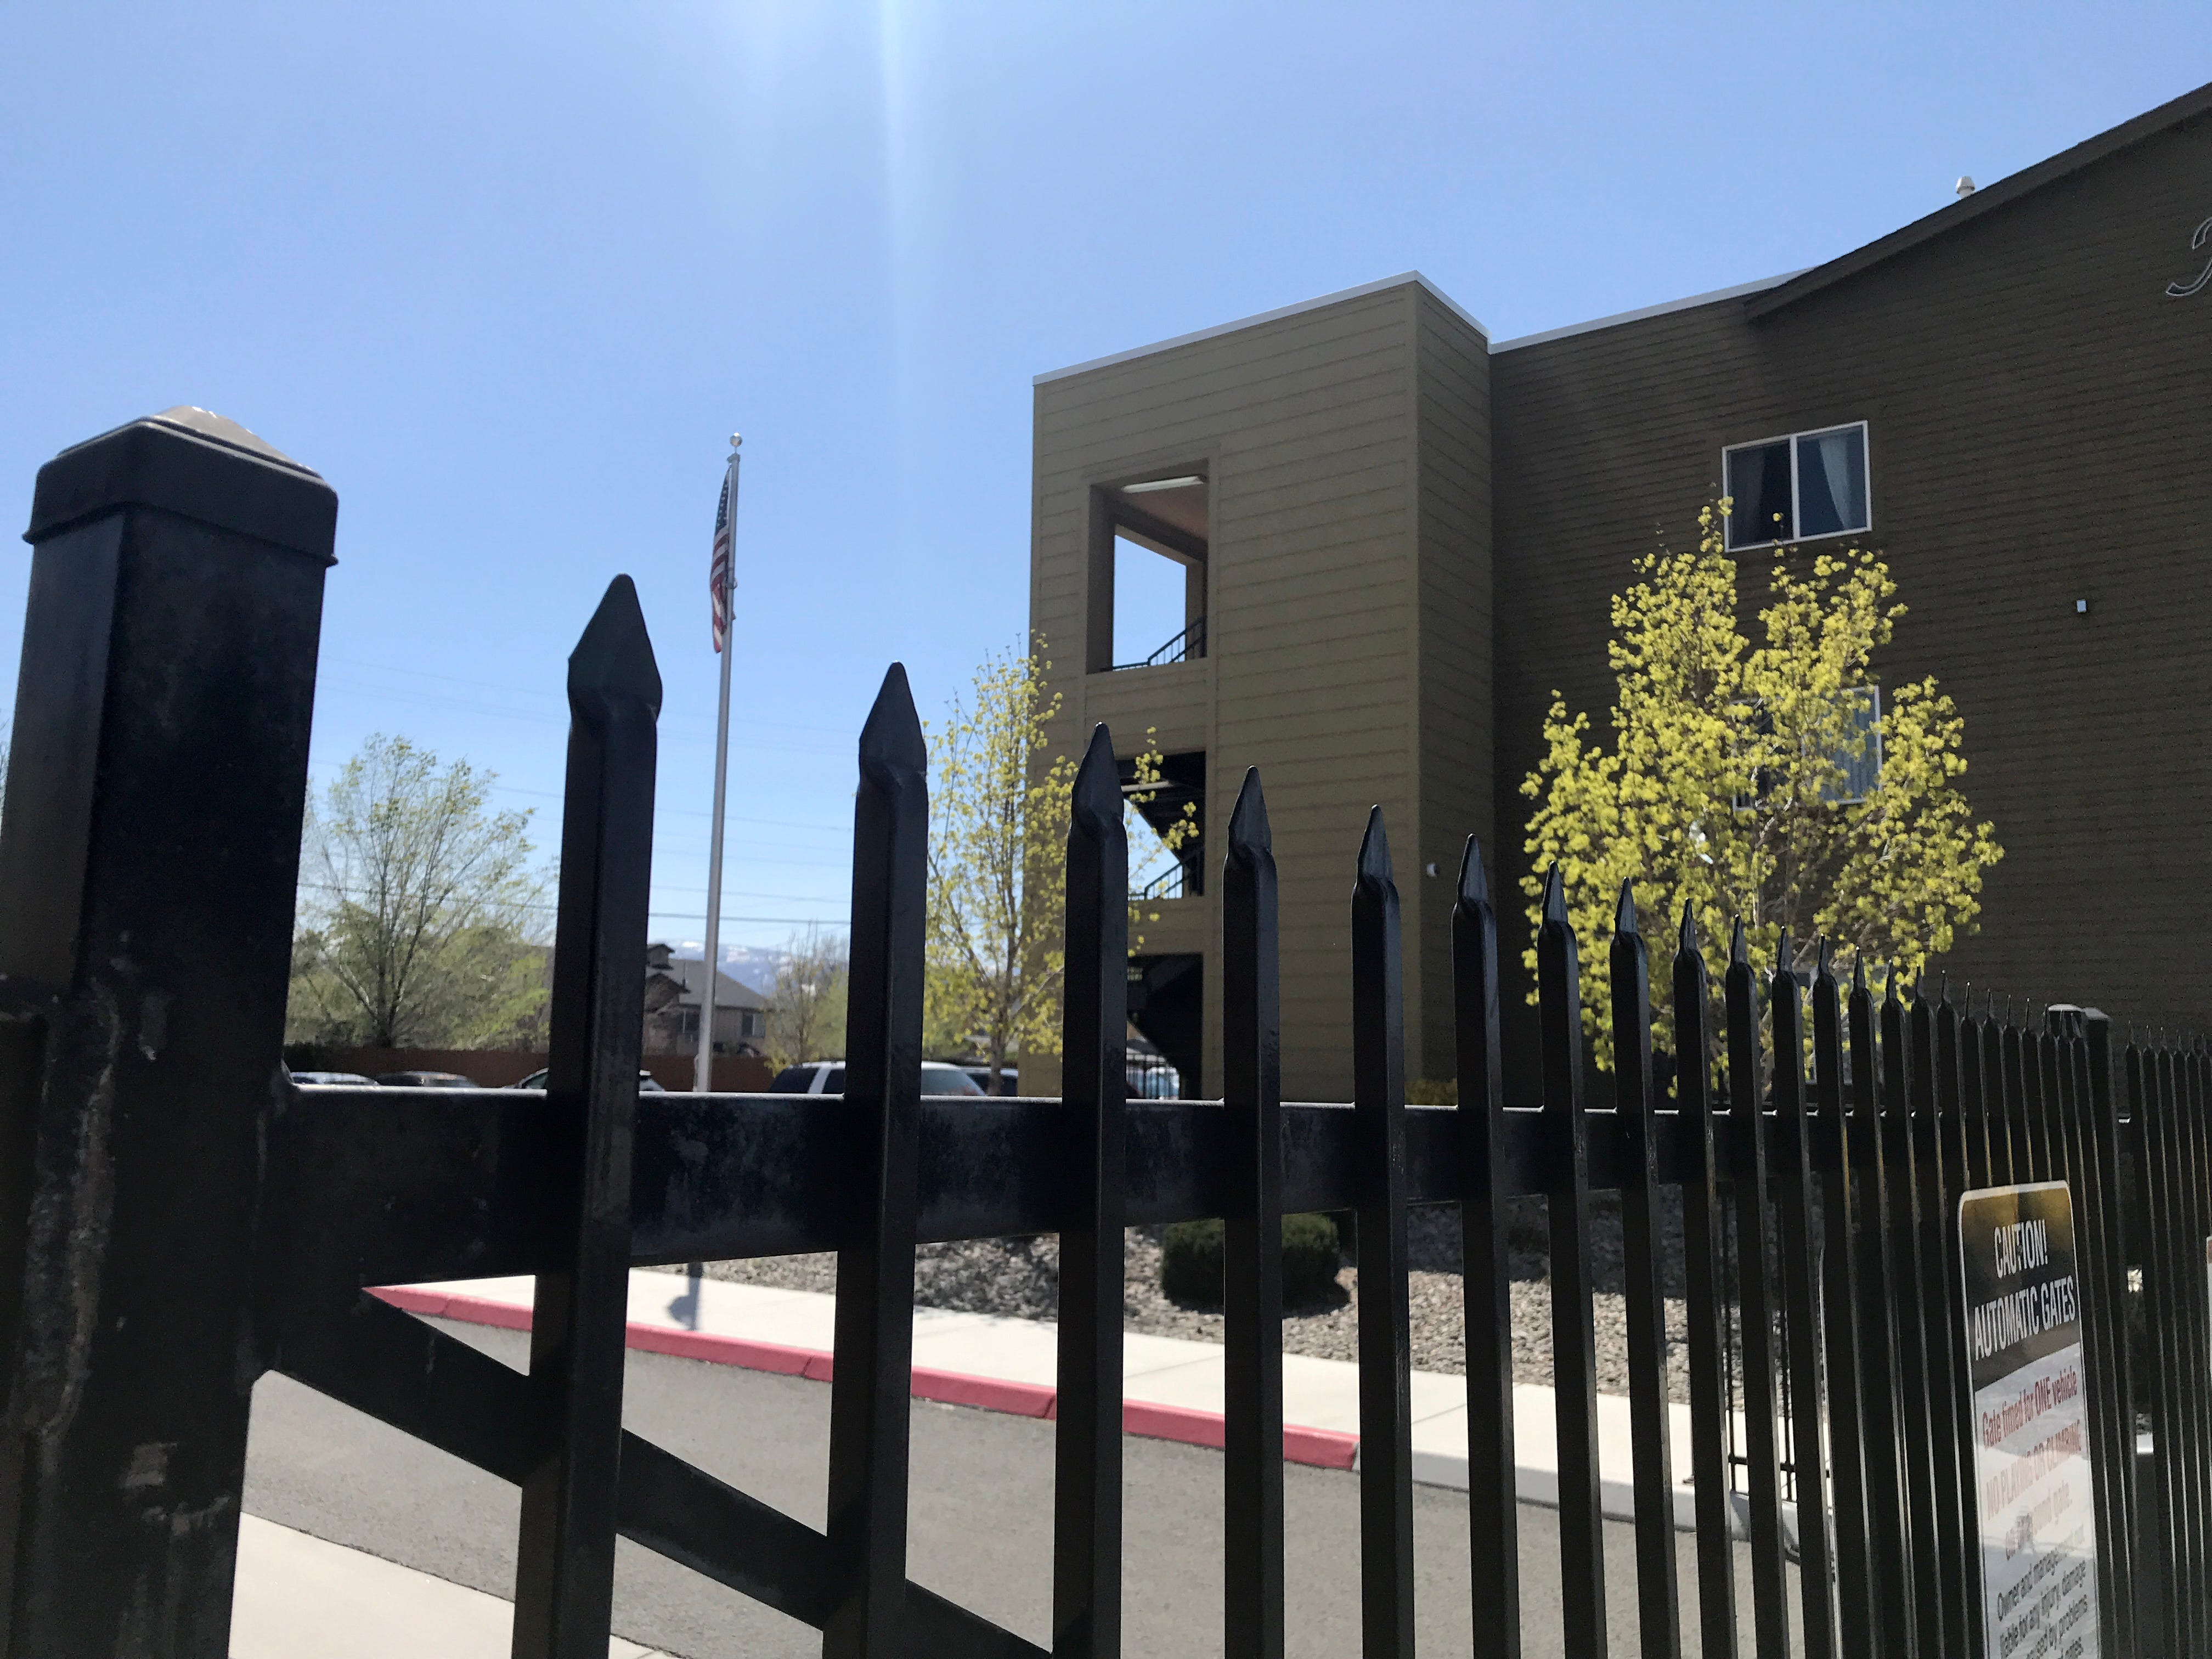 Javier Rodriguez, 67, was found dead in his apartment on the 1400 block of Sullivan Drive. According to the medical examiner's office, the manner of death of homicide and the cause of death was a gunshot wound to the chest.Photo taken April 17, 2021.